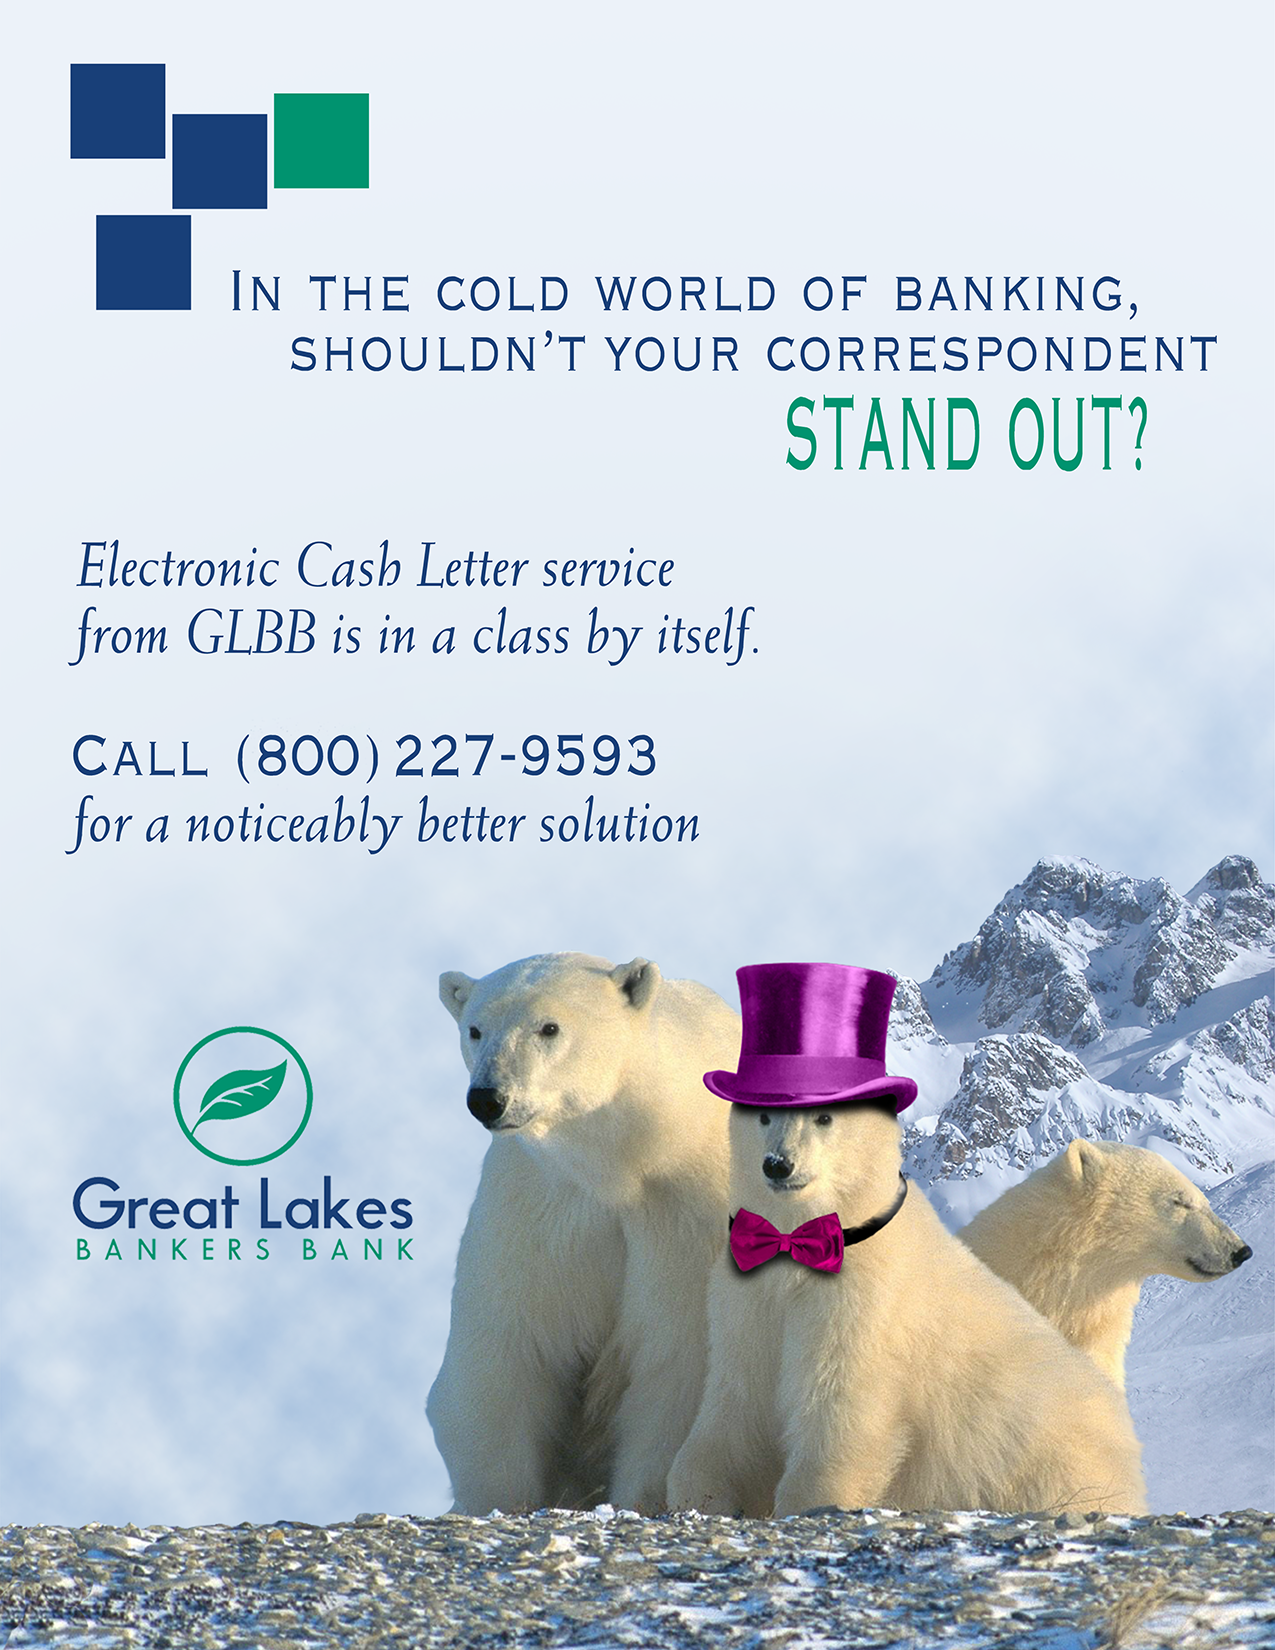 Bank print ad #1 by J-Squared